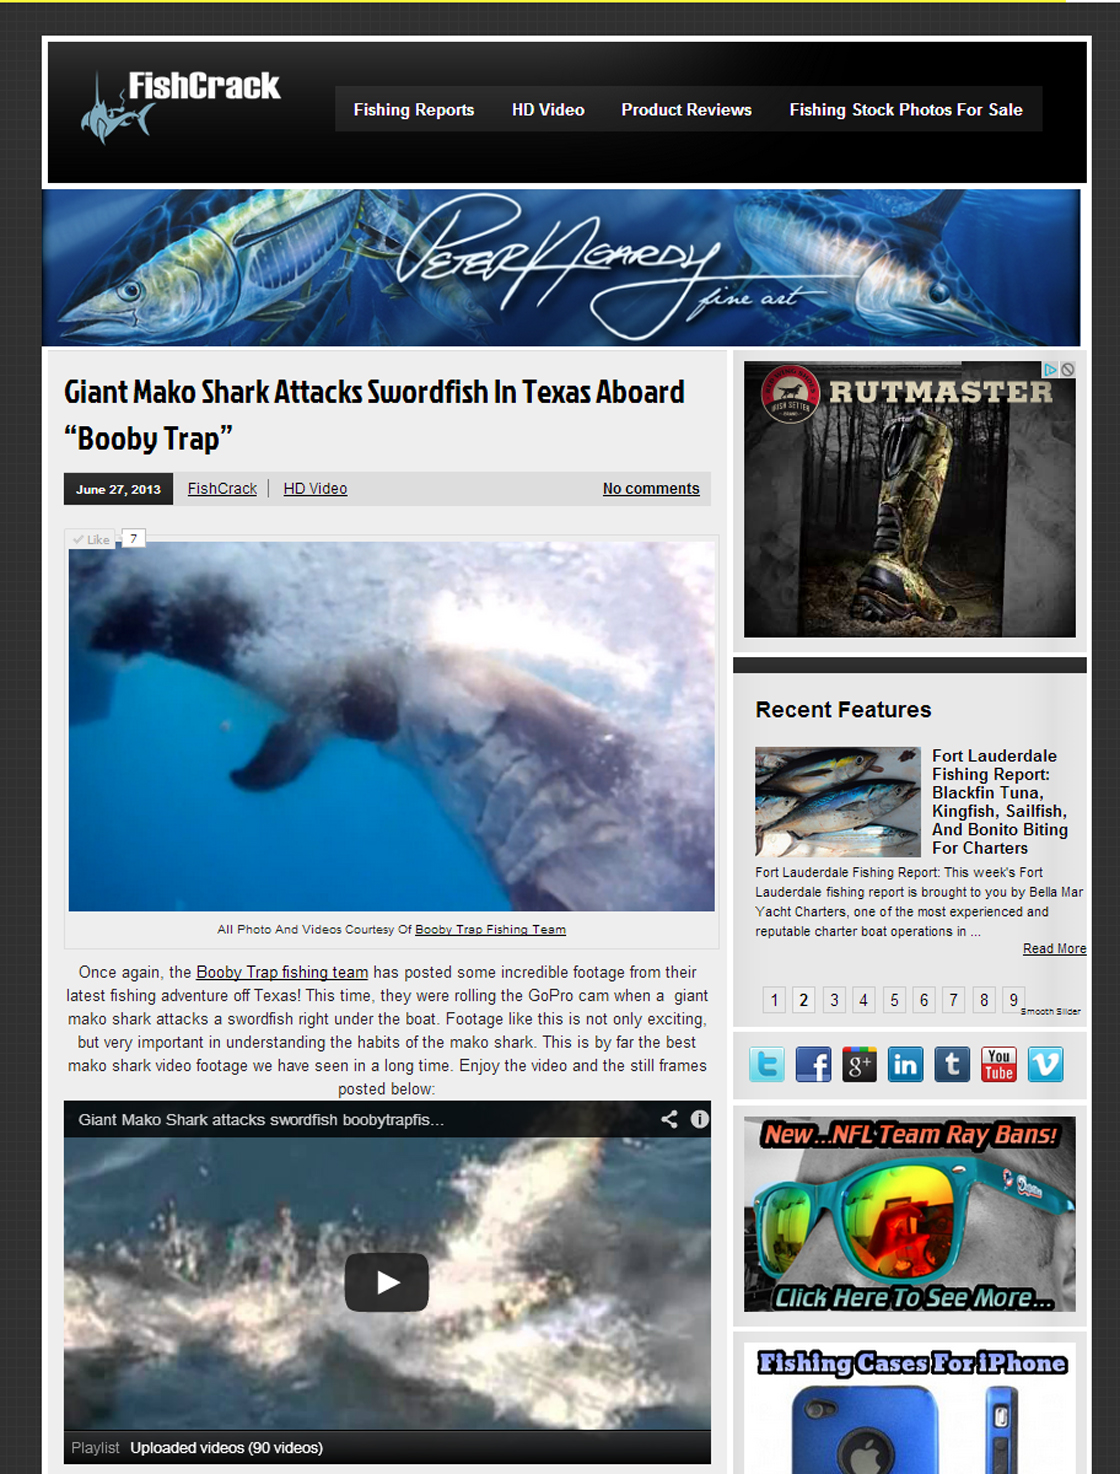 FISHCRACK writes an article about giant mako shark attacking swordfish with the booby trap fishing team